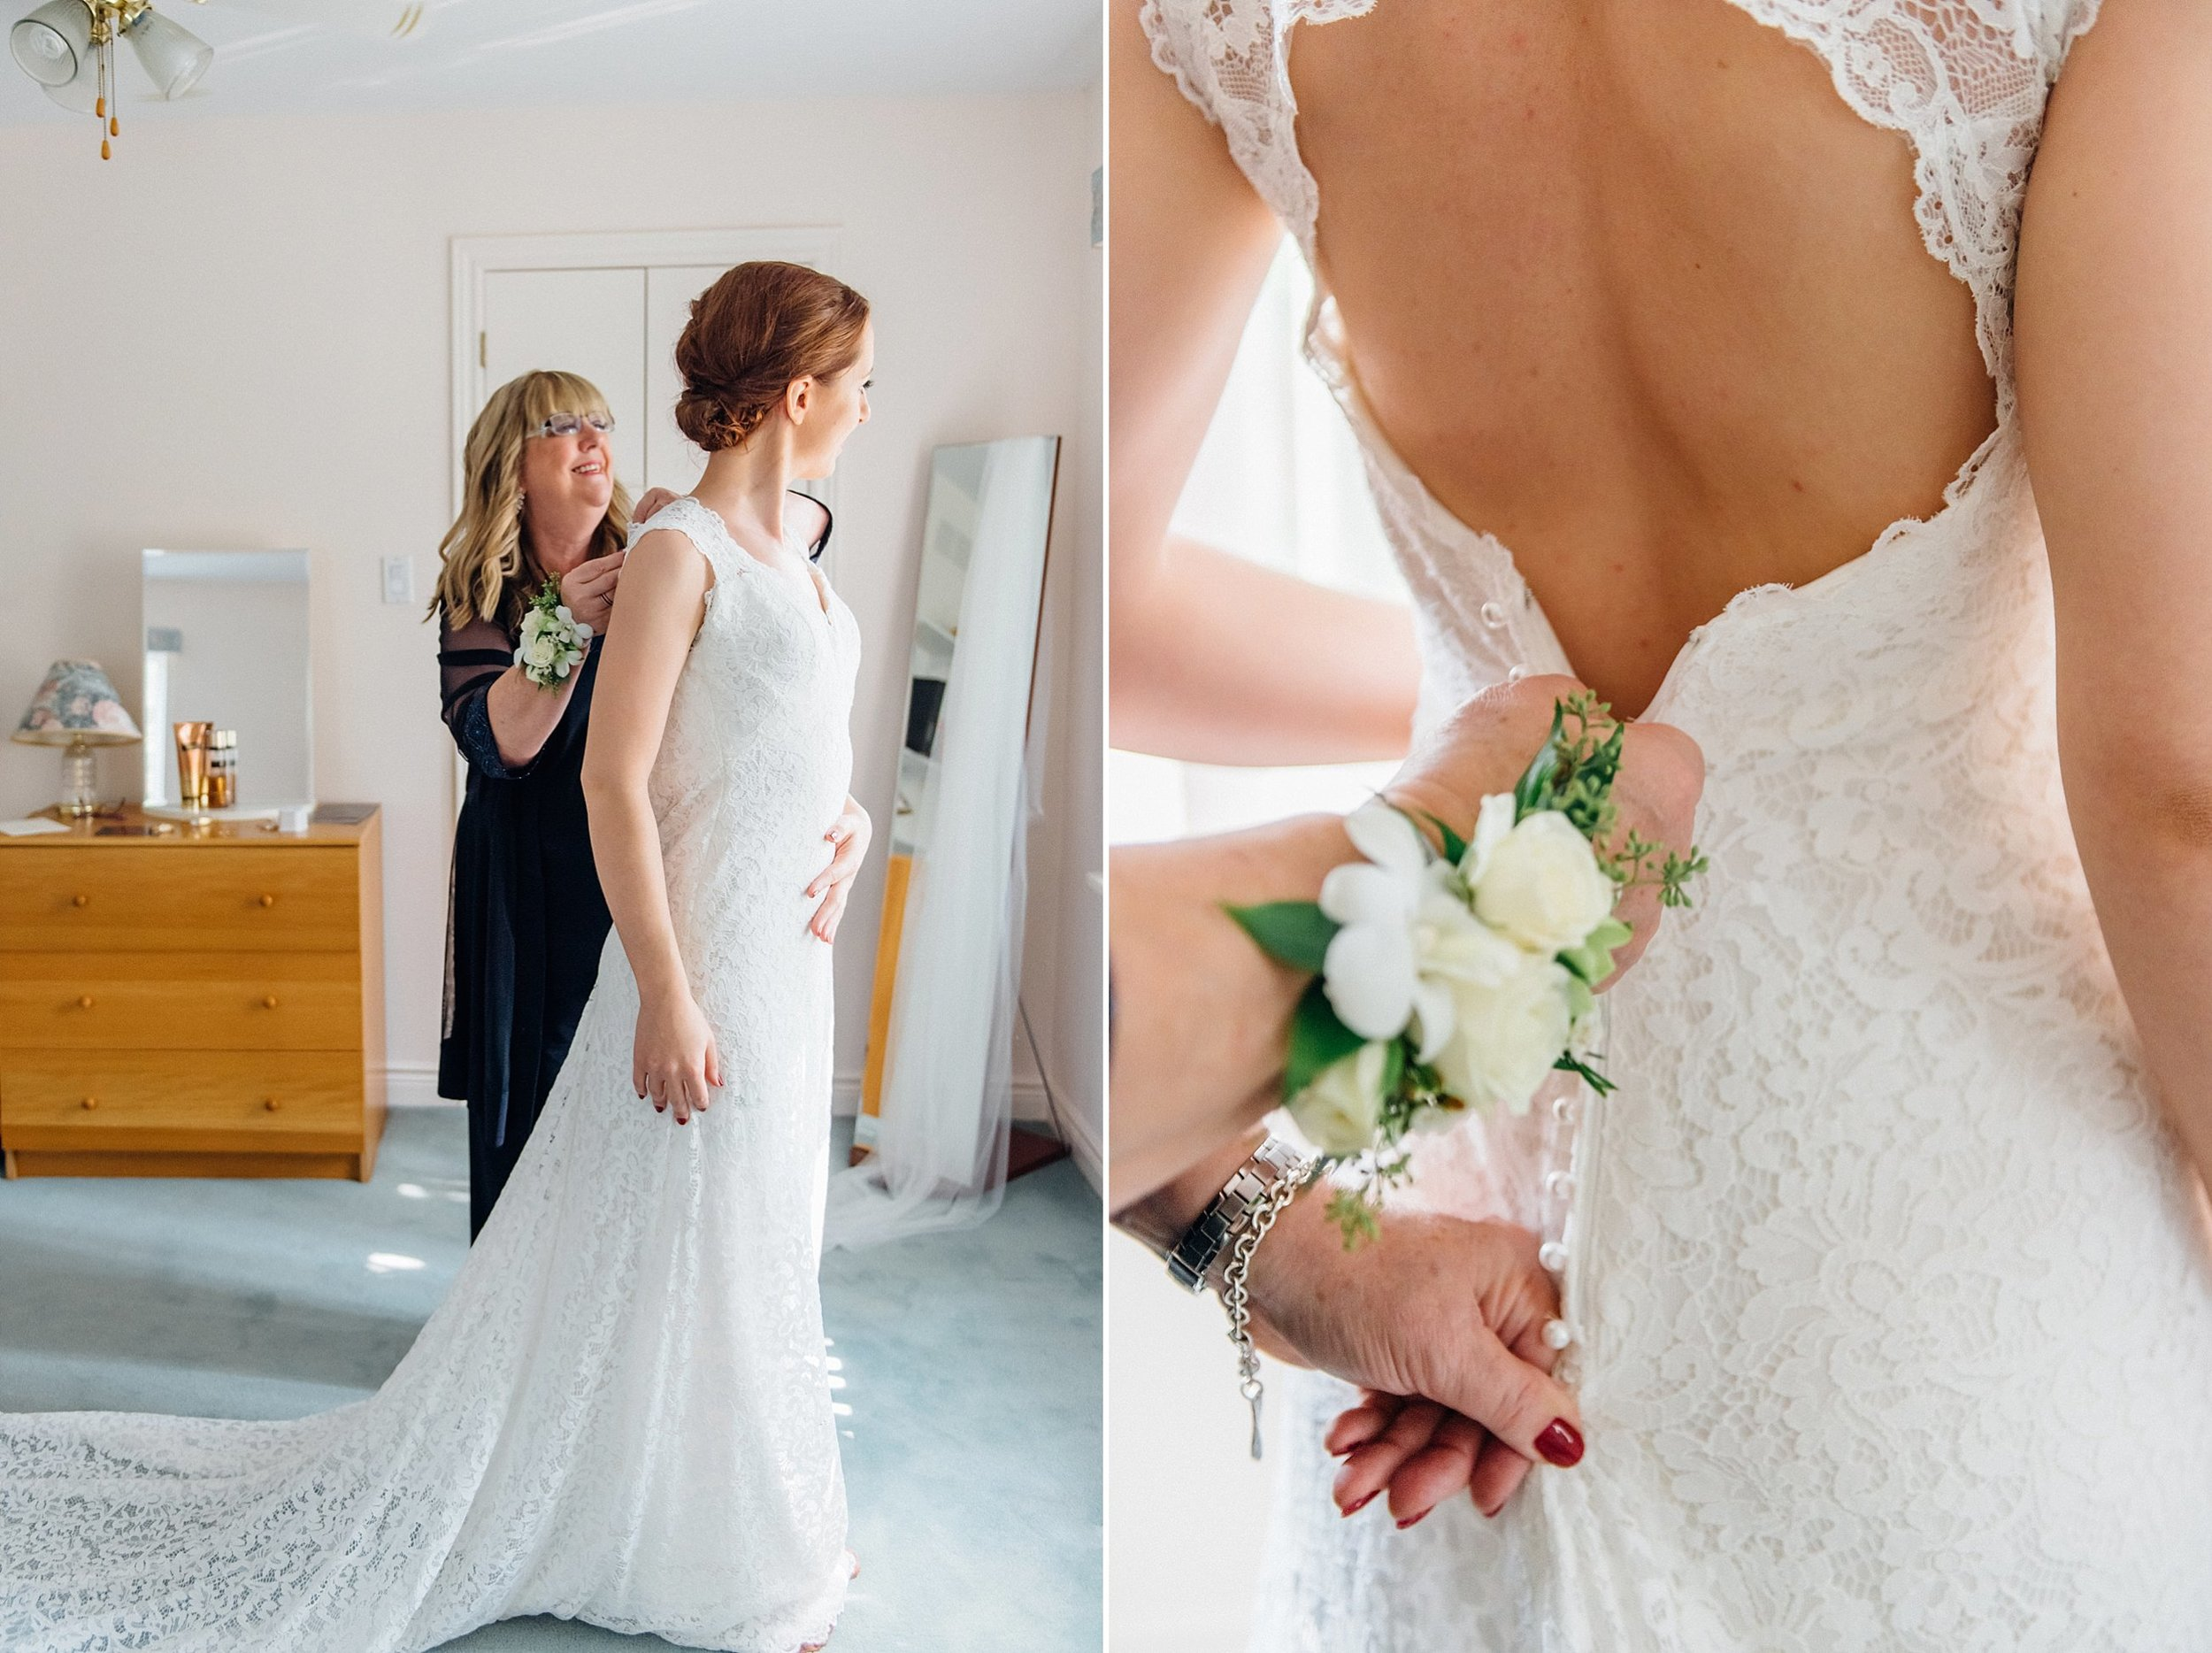 Ali and Batoul Photography - light, airy, indie documentary Ottawa wedding photographer_0194.jpg